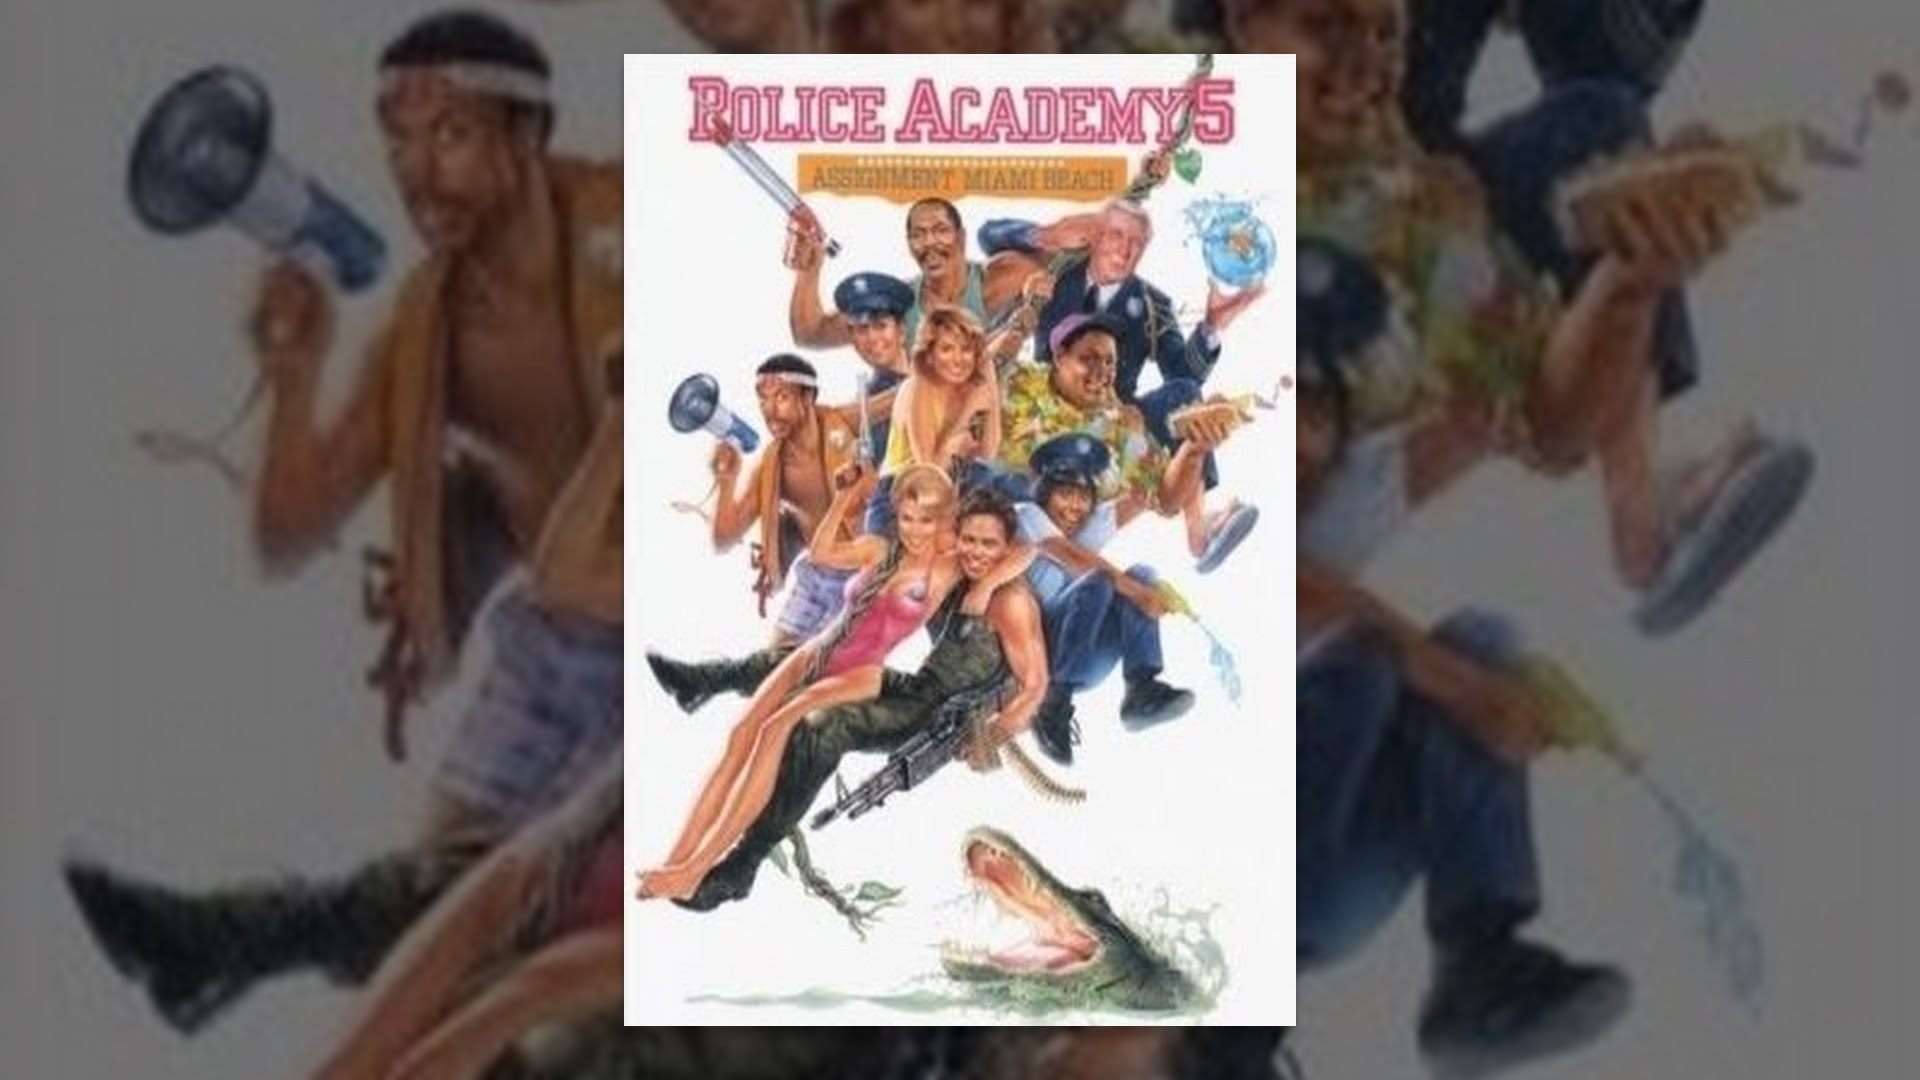 Police Academy The Series  Wikipedia